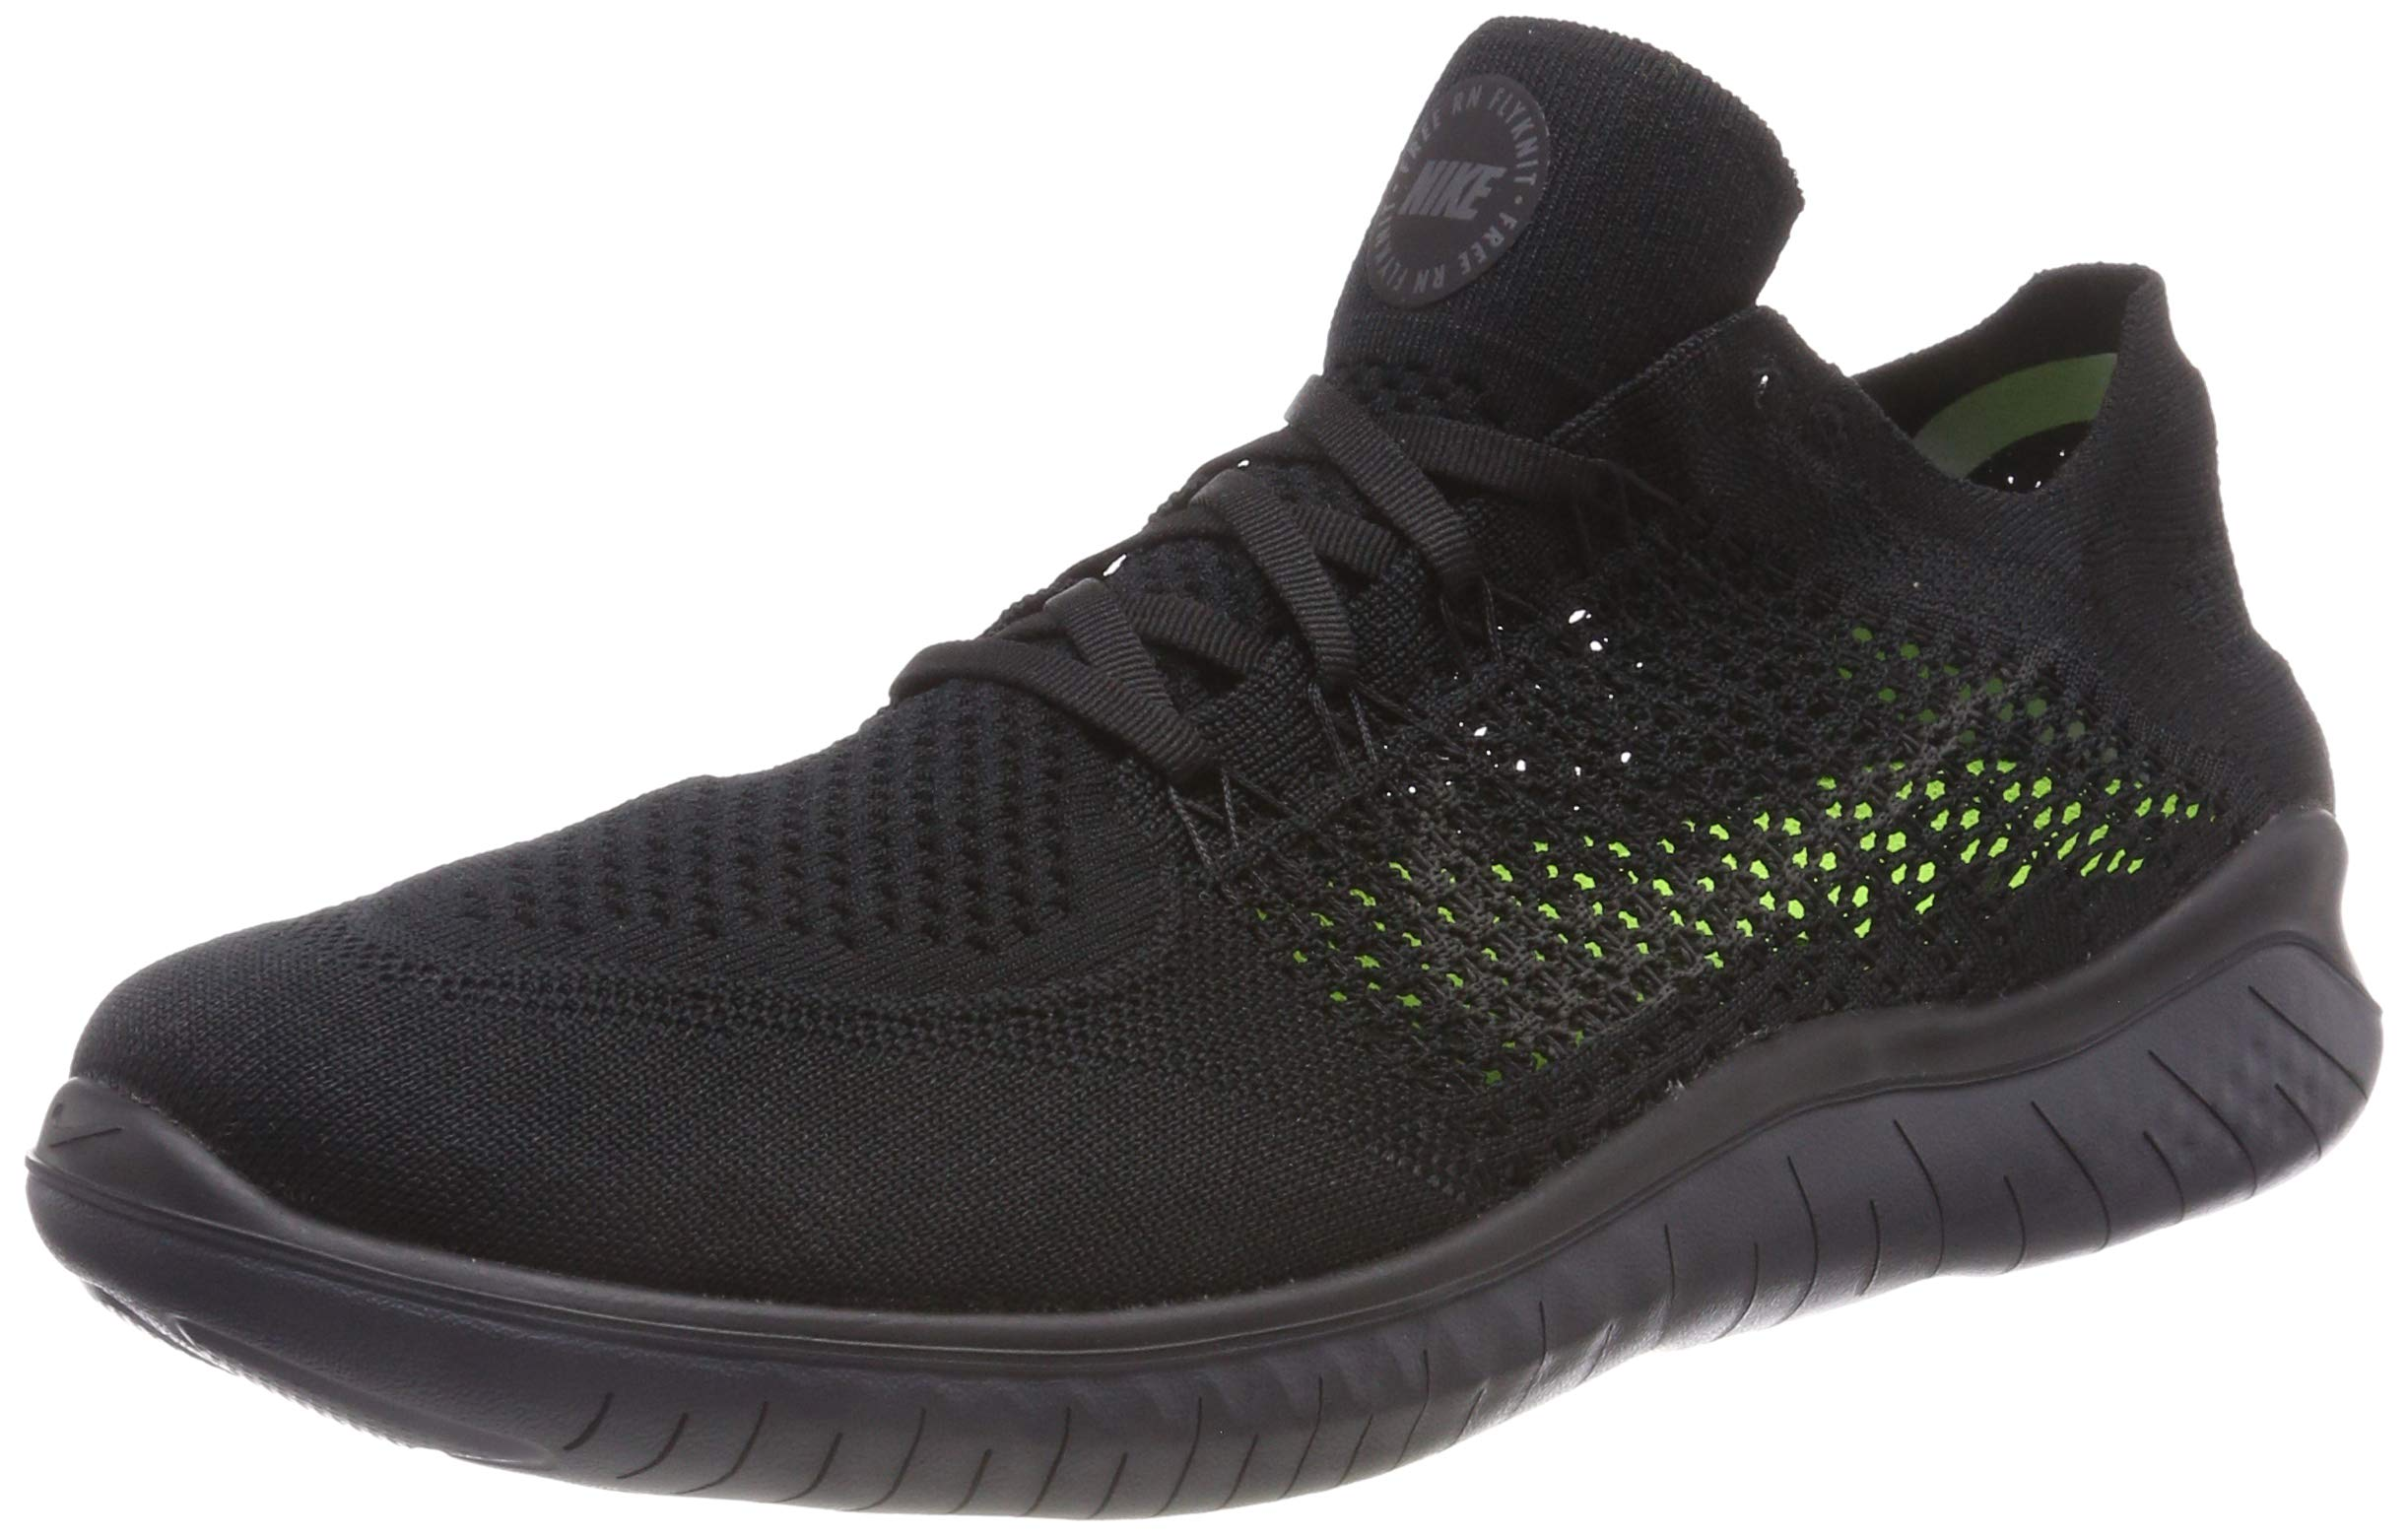 fb74f4b5 Nike Men's Free RN Flyknit 2018 Black/Anthracite 12.0